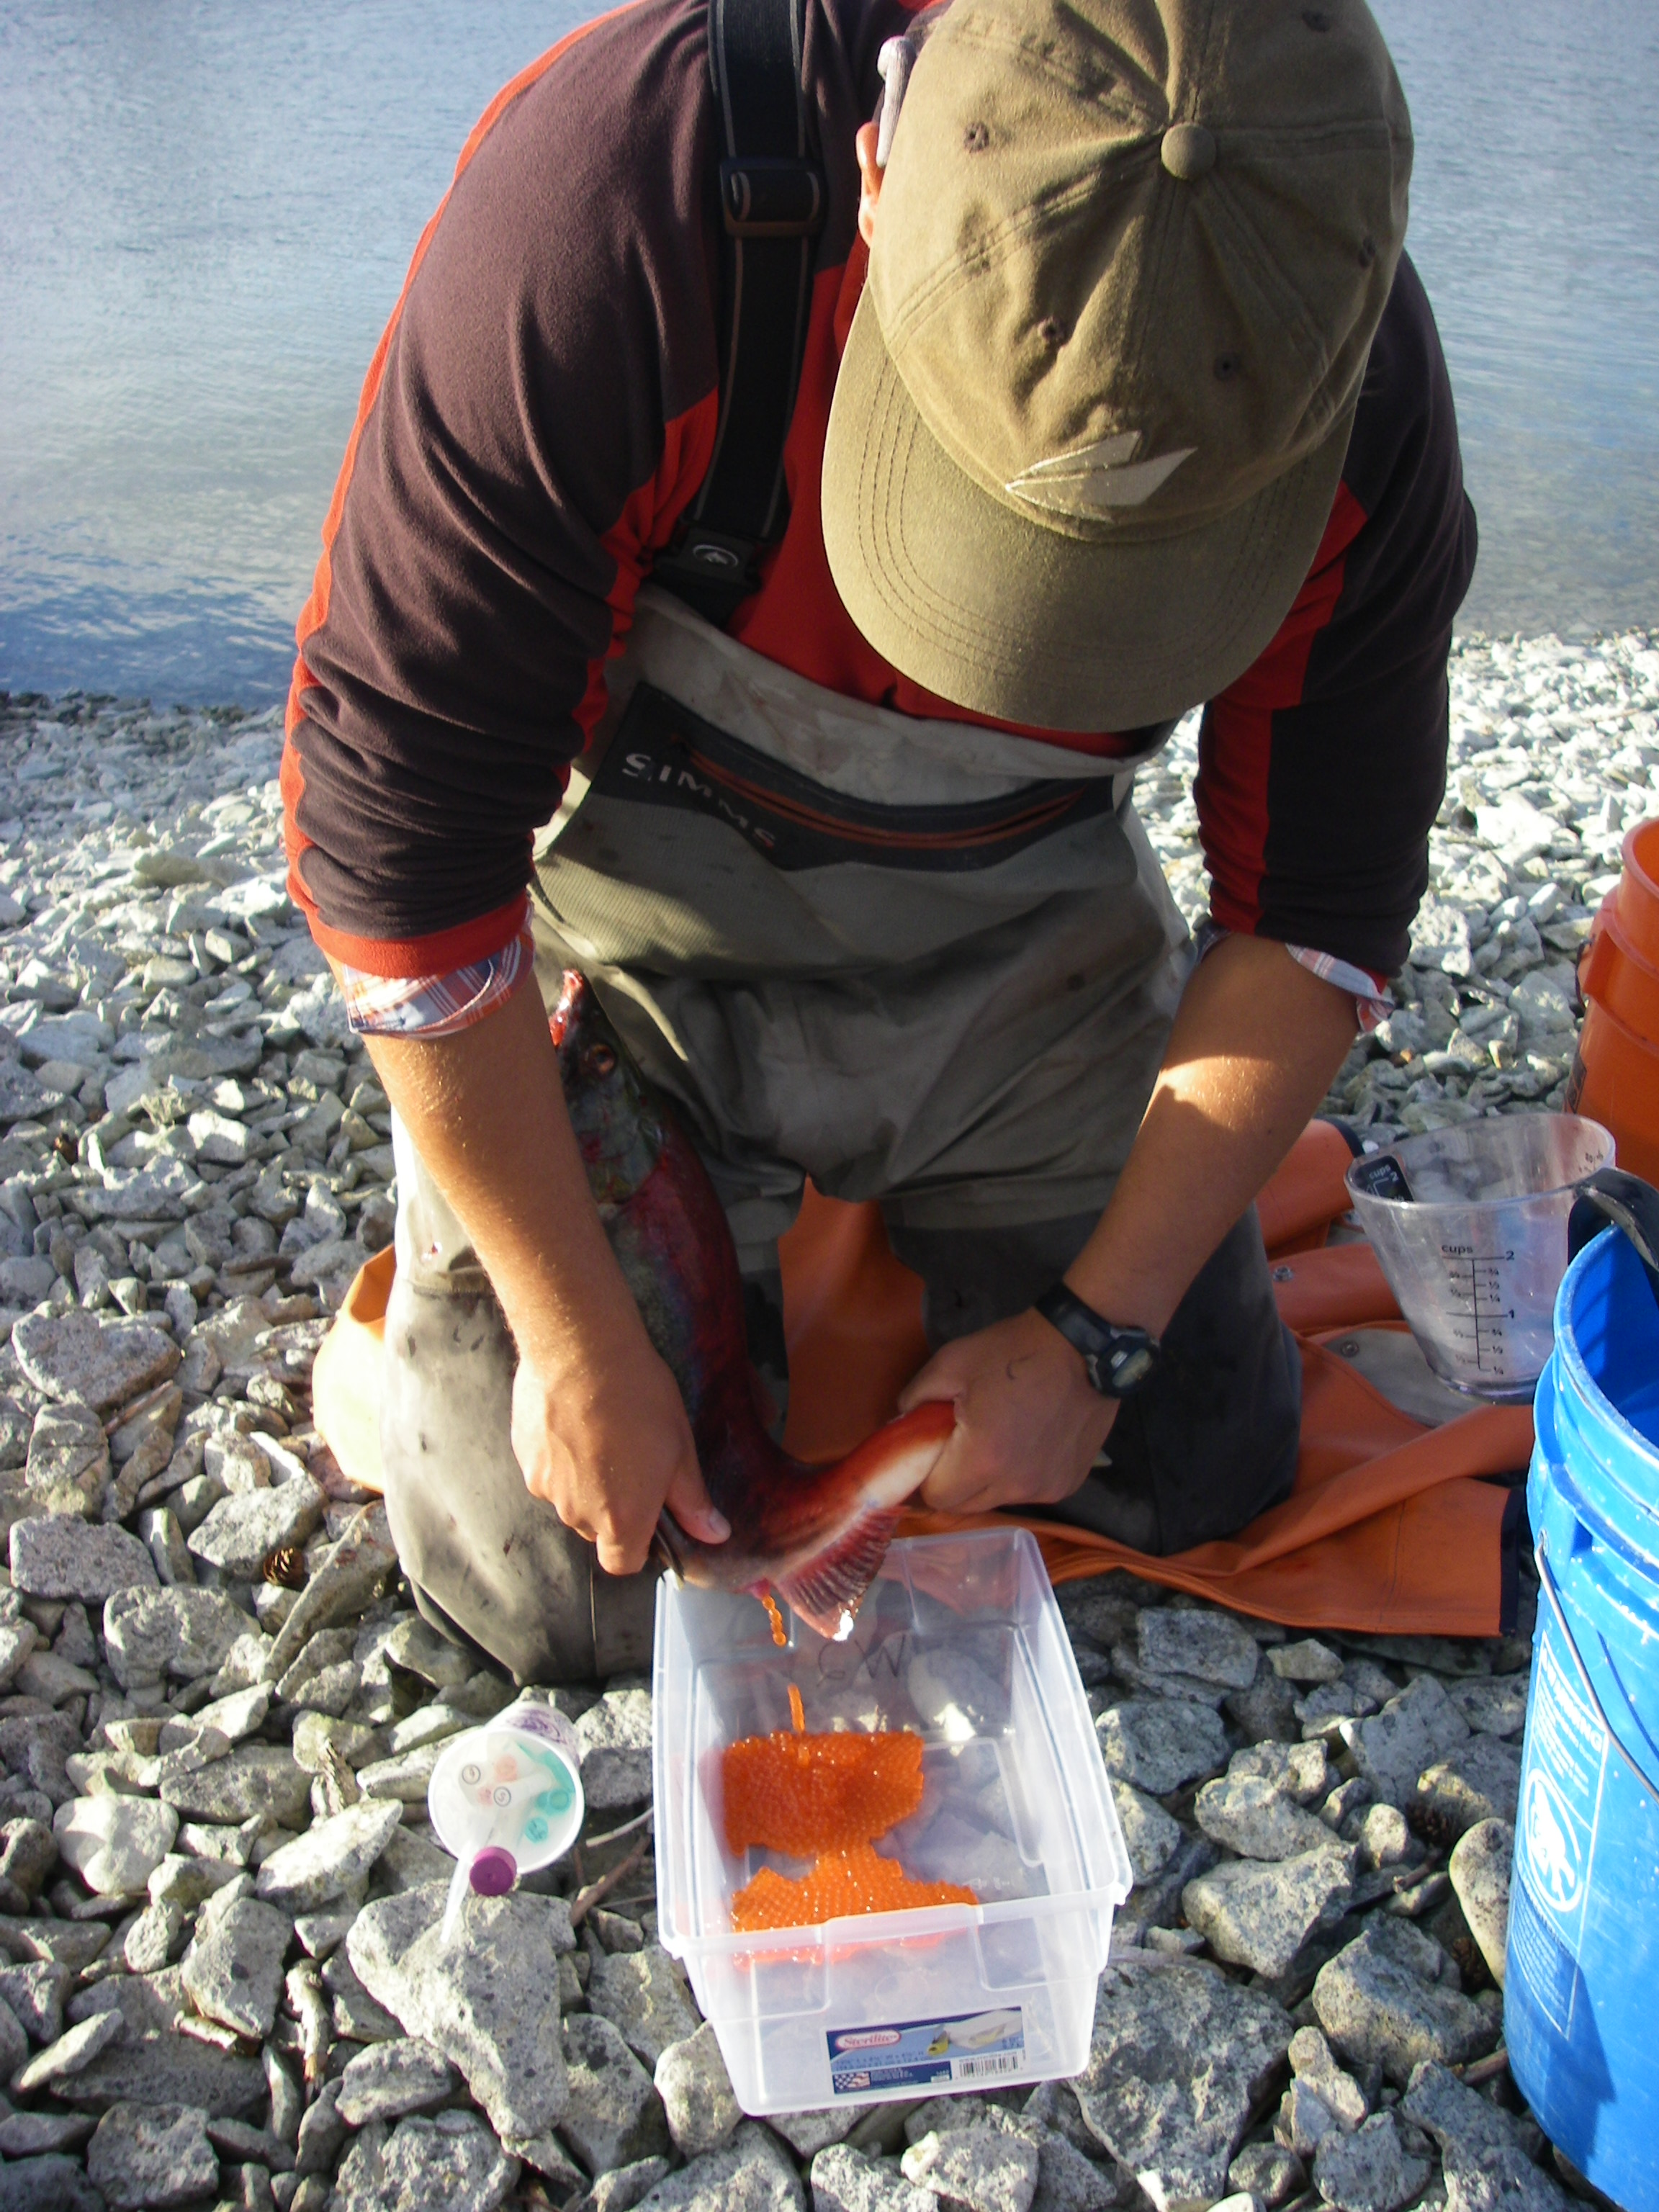 Morgan Sparks collects gametes from Iliamna Lake, Alaska sockeye salmon.